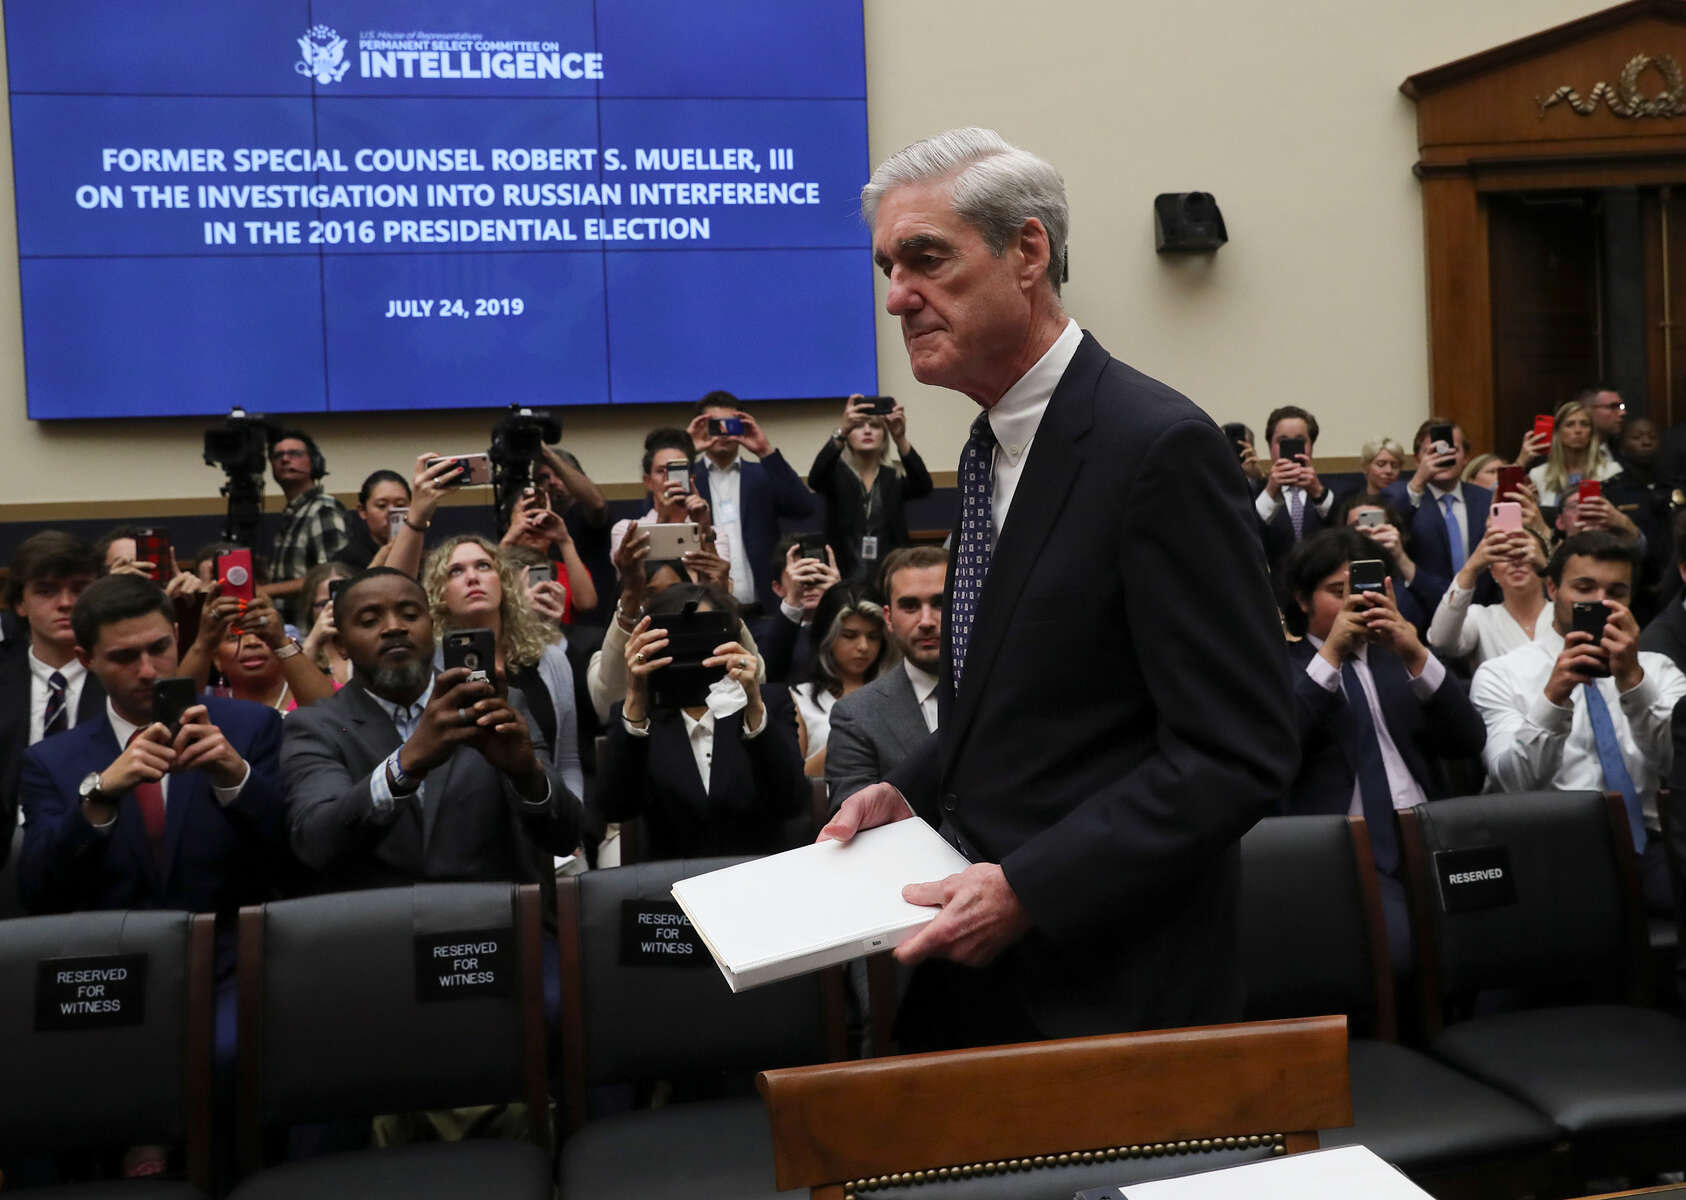 Former Special Counsel Robert Mueller arrives to testify before a House Intelligence Committee hearing on the Office of Special Counsel's investigation into Russian Interference in the 2016 Presidential Election on Capitol Hill in Washington, U.S., July 24, 2019.